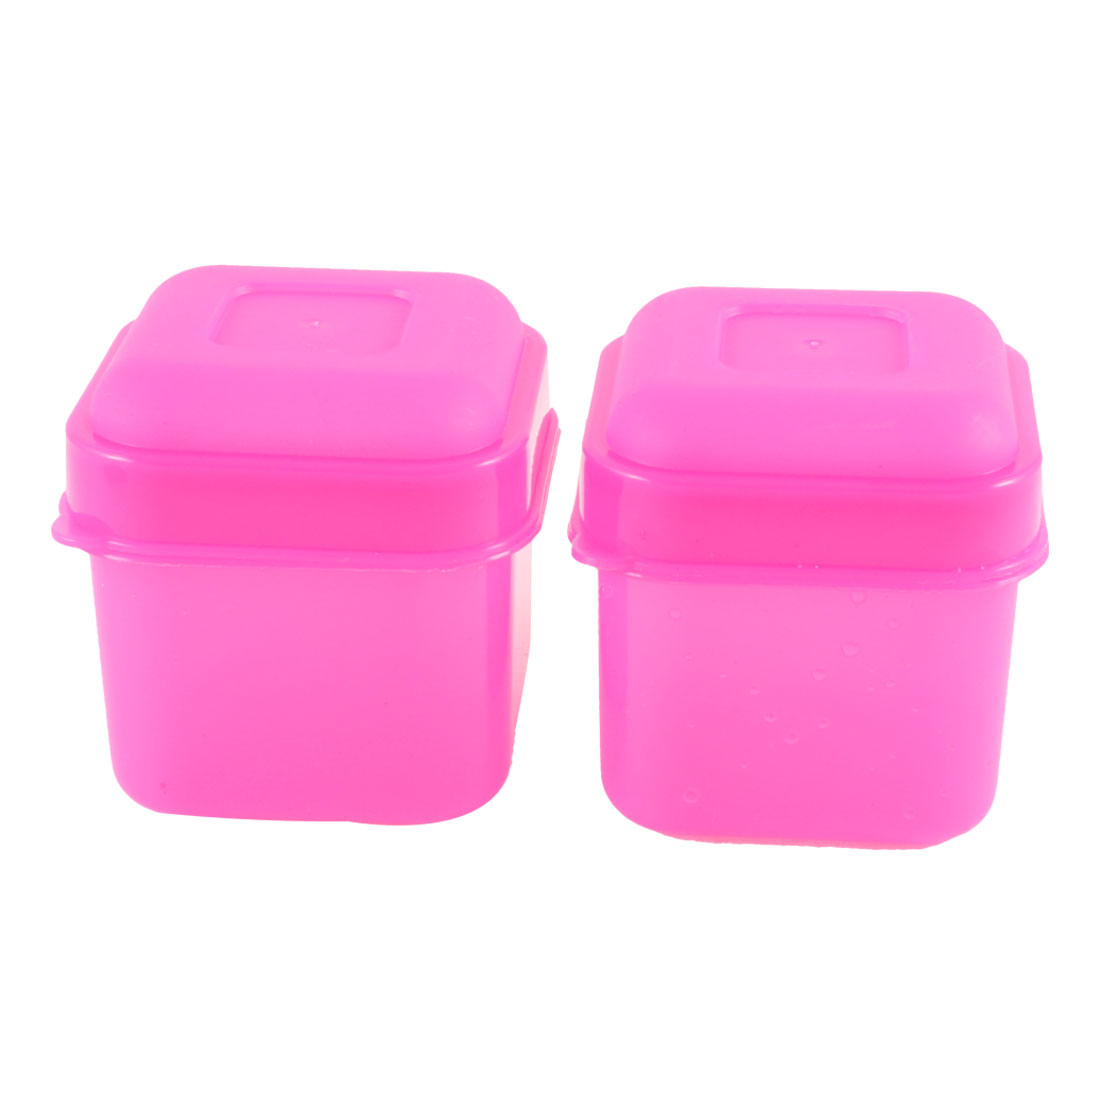 2 Pcs Fuchsia Plastic Square Mini Preservation Keeping Fresh Box 100ml